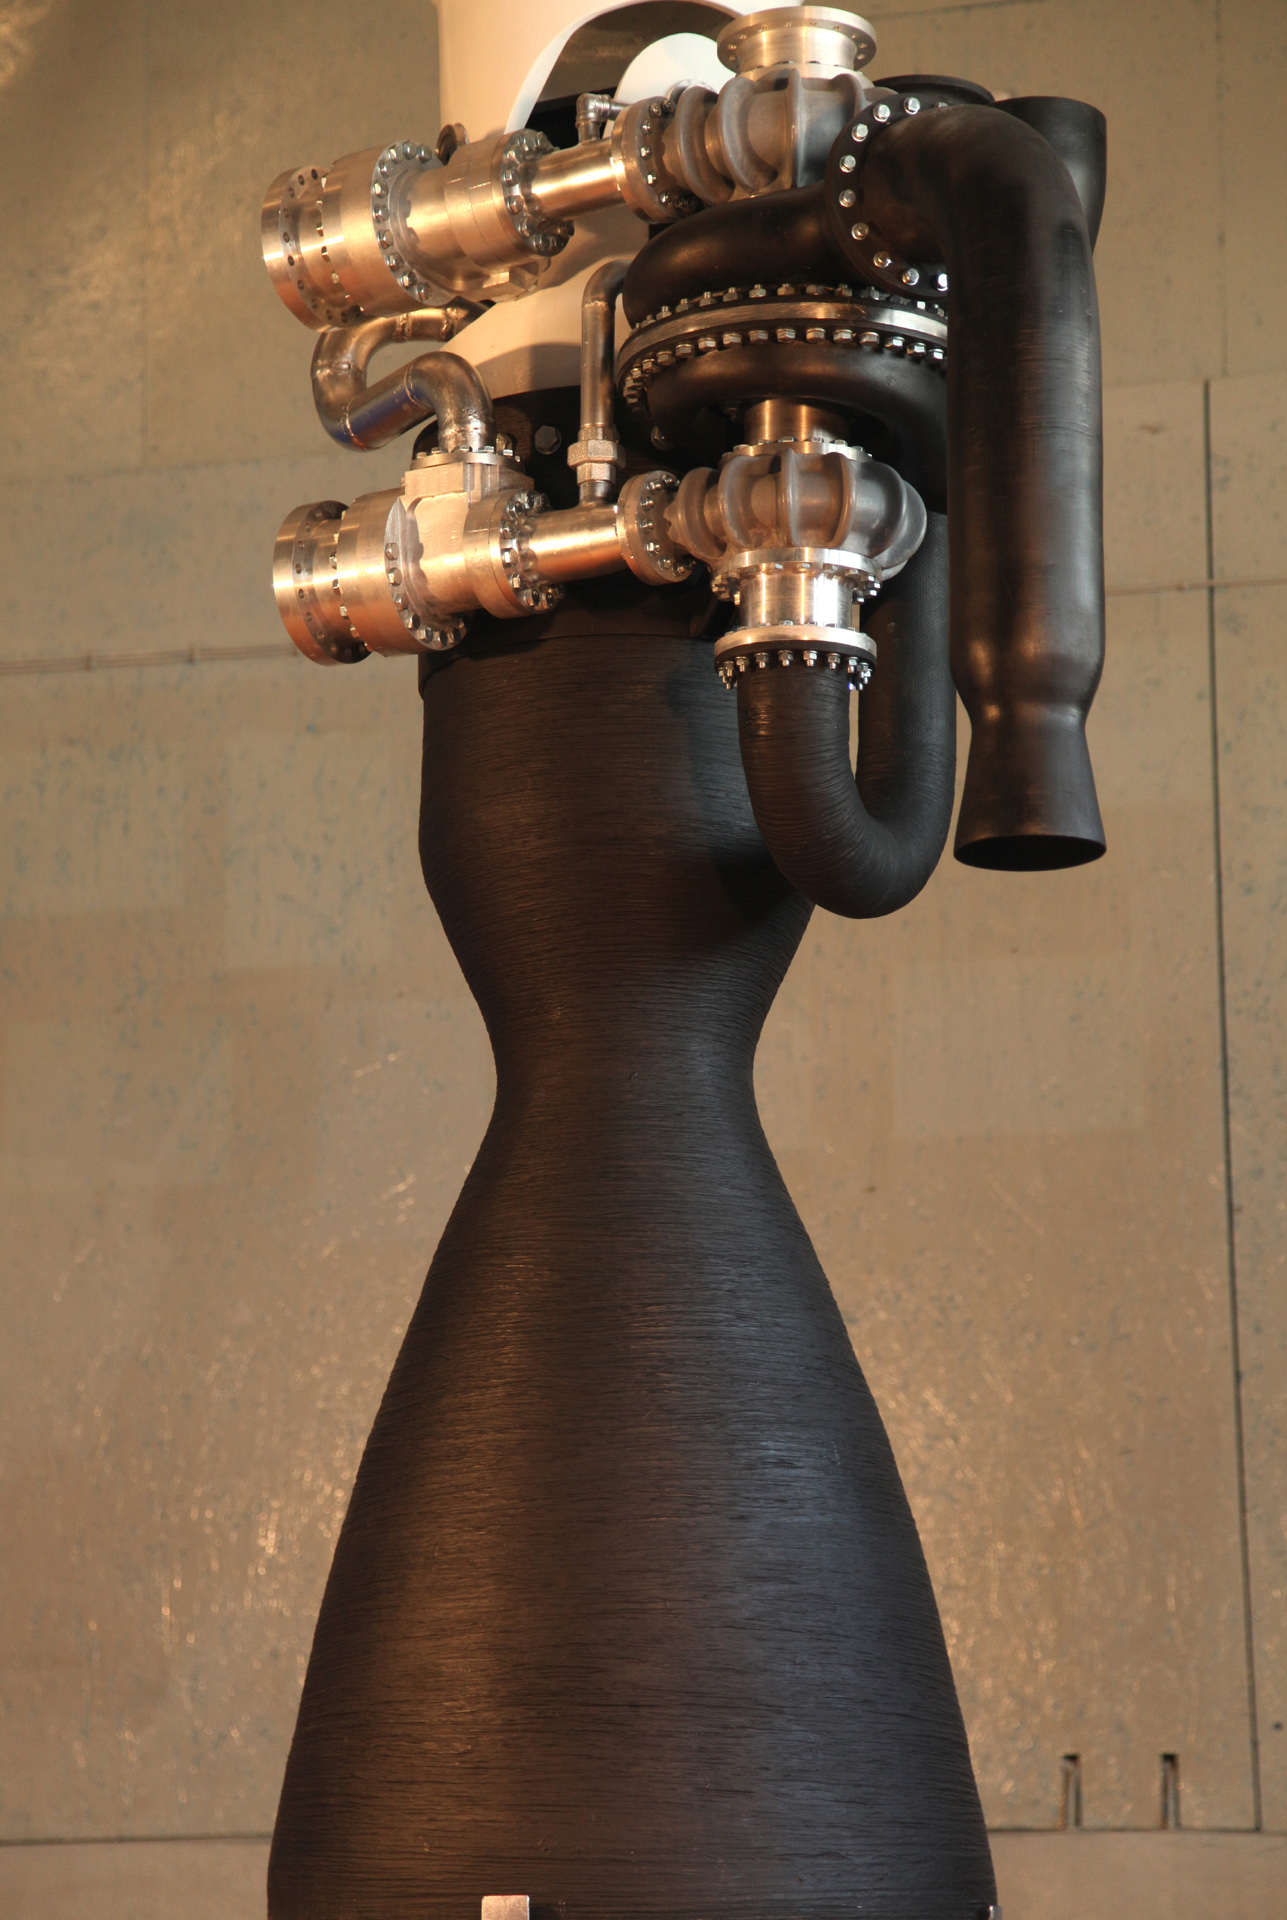 File:Executor rocket engine jpg - Wikimedia Commons